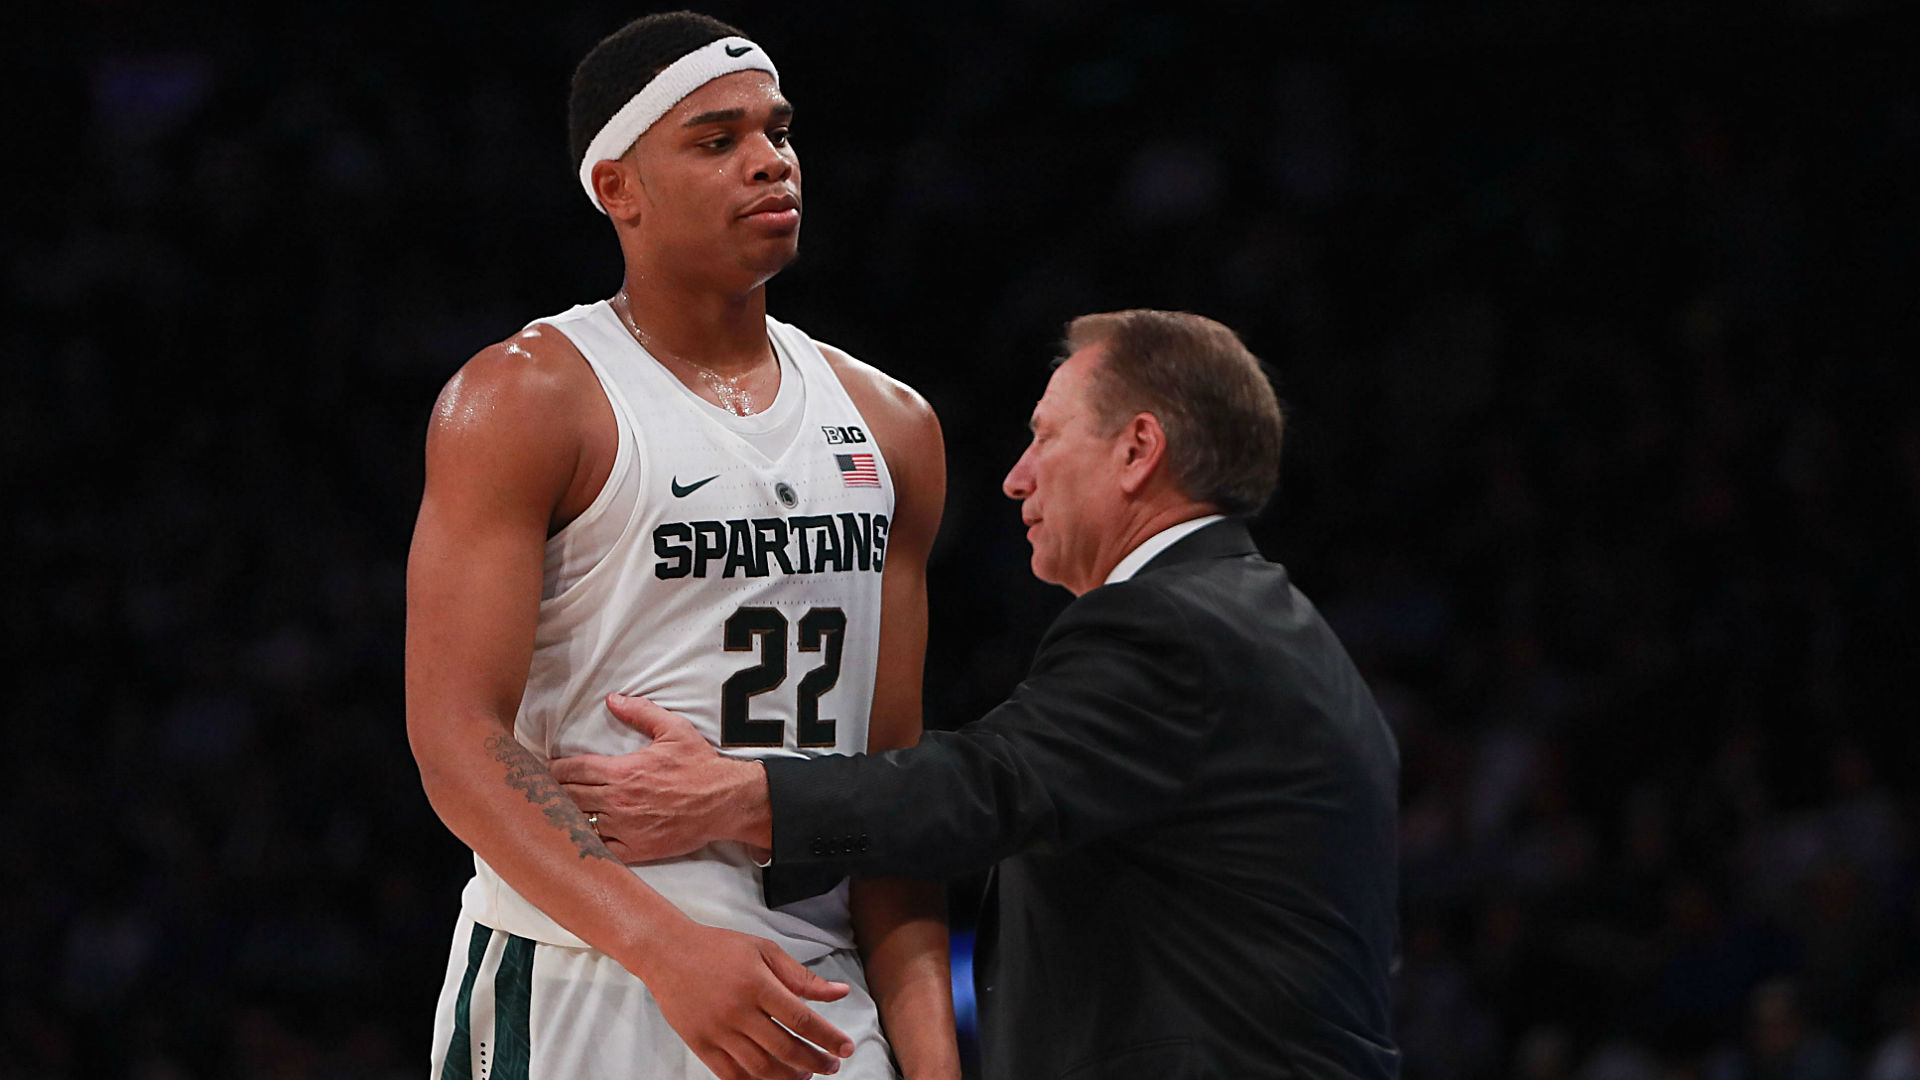 McQuaid Scores 20, Michigan State Beats DePaul, 73-51